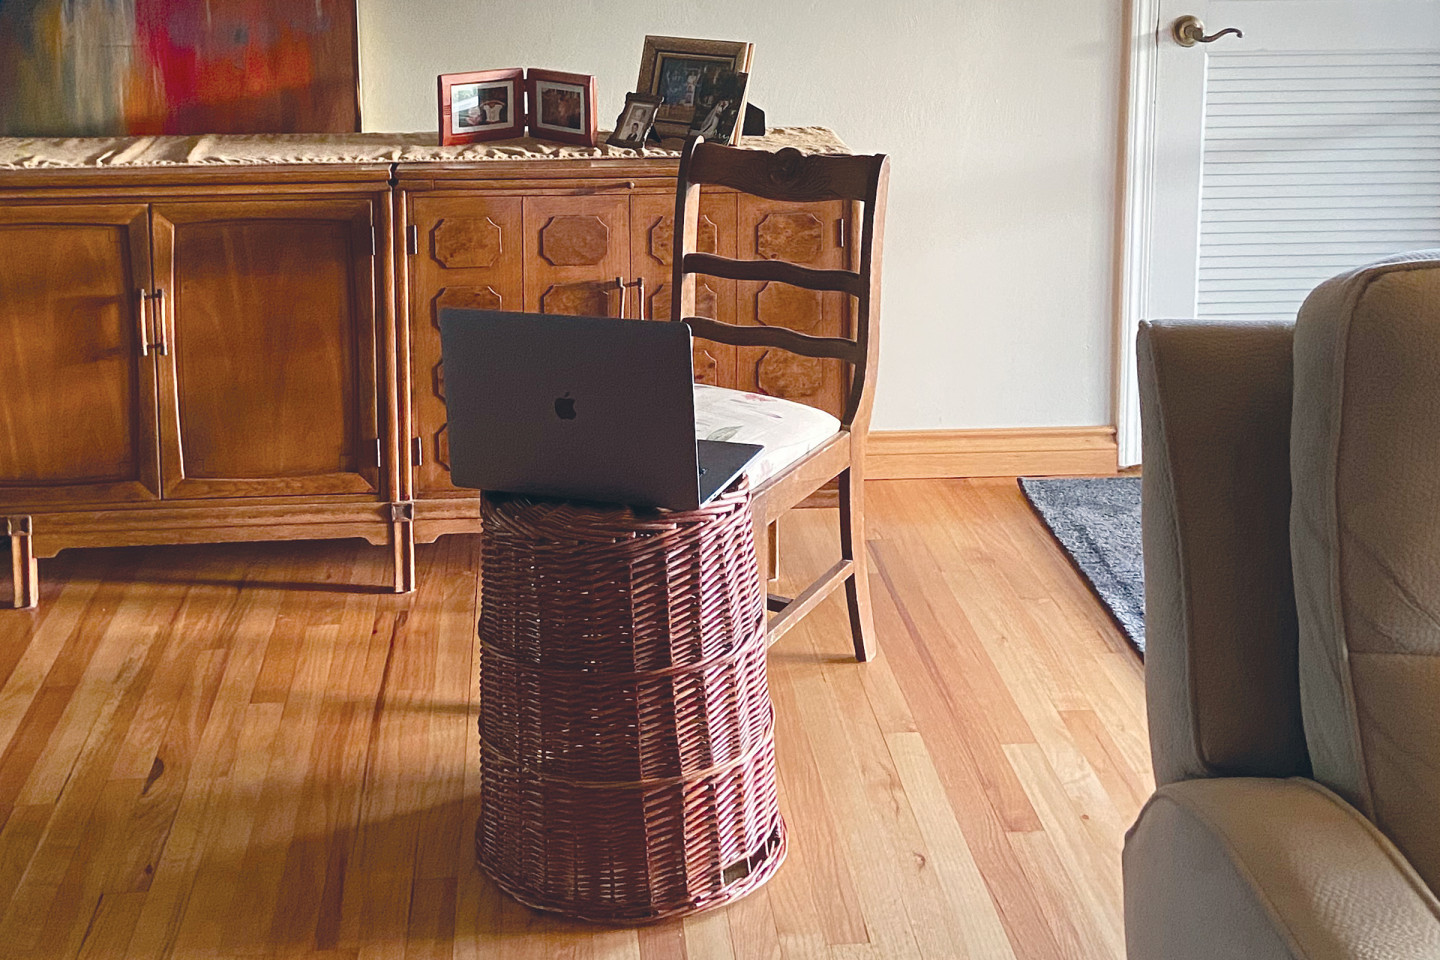 A laptop computer sits on an overturned laundry basket in a living room.